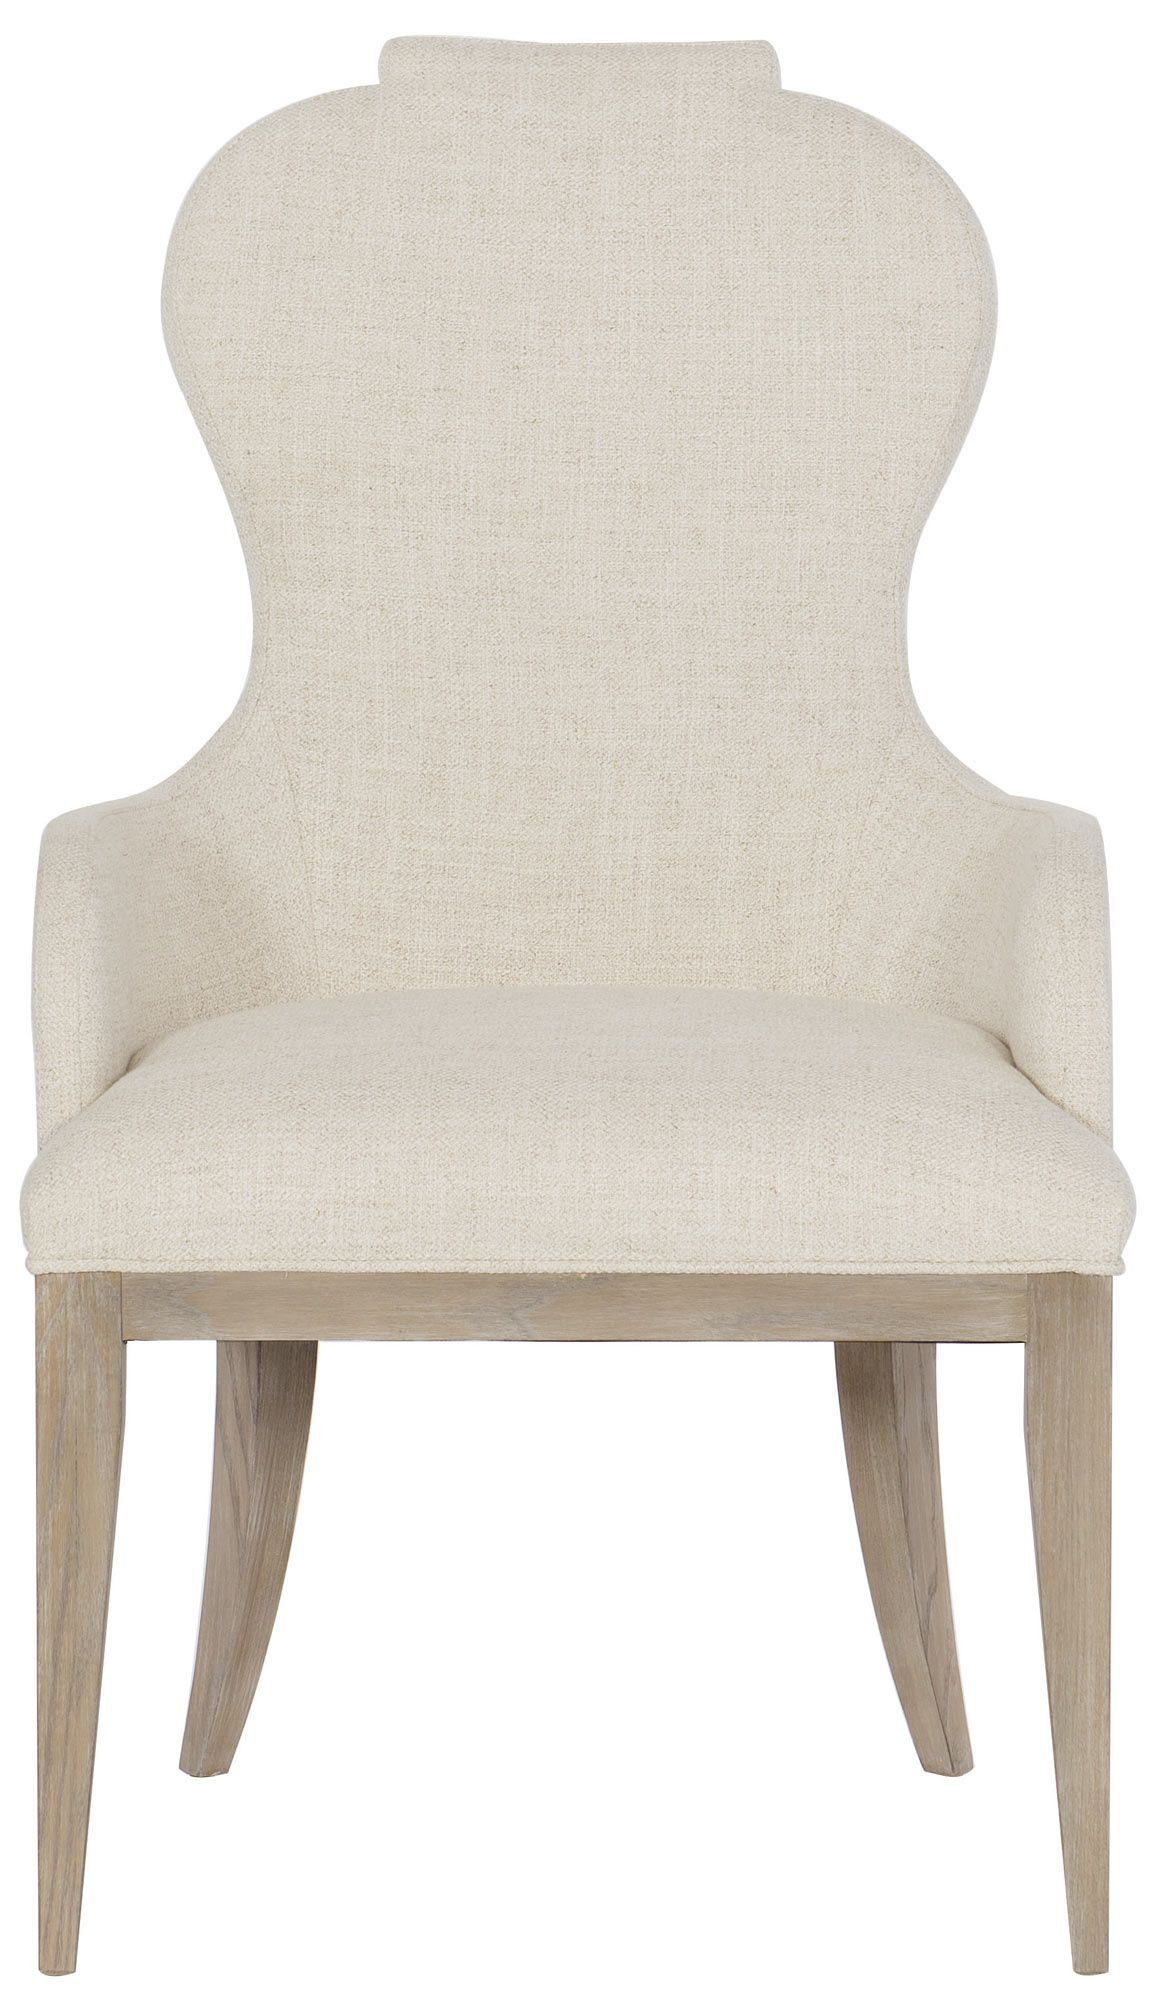 Upholstered Arm Chair Bernhardt Upholstered Arm Chair